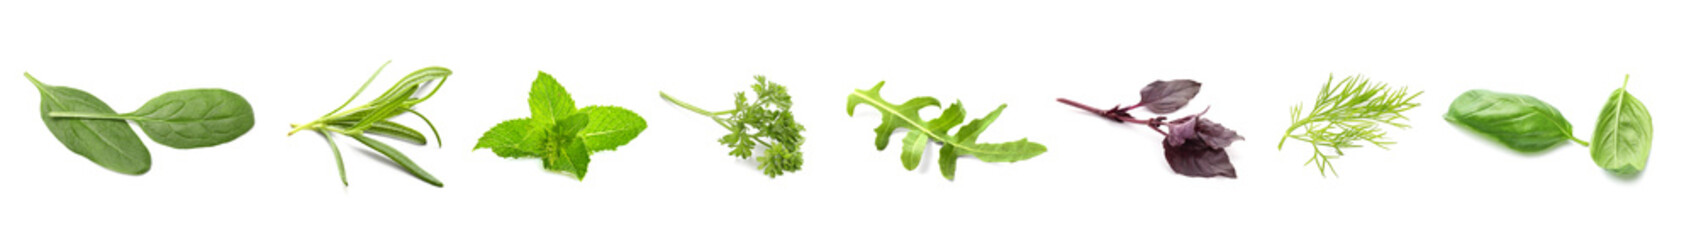 Different fresh herbs on white background Fotobehang